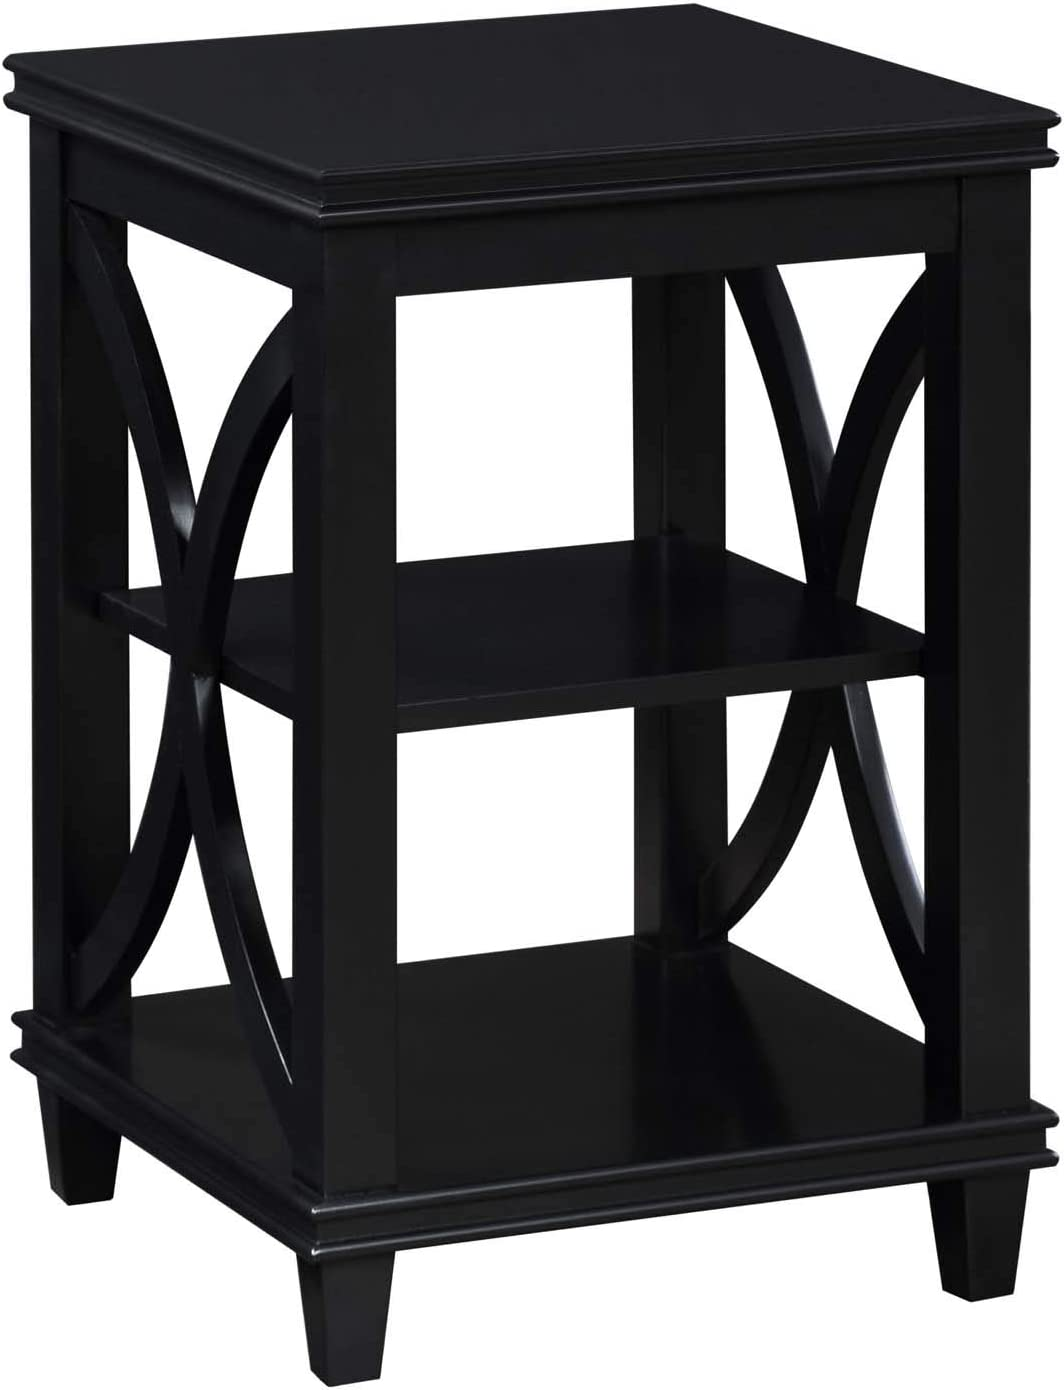 Convenience Concepts Florence Omaha Mall End Max 54% OFF Table Black